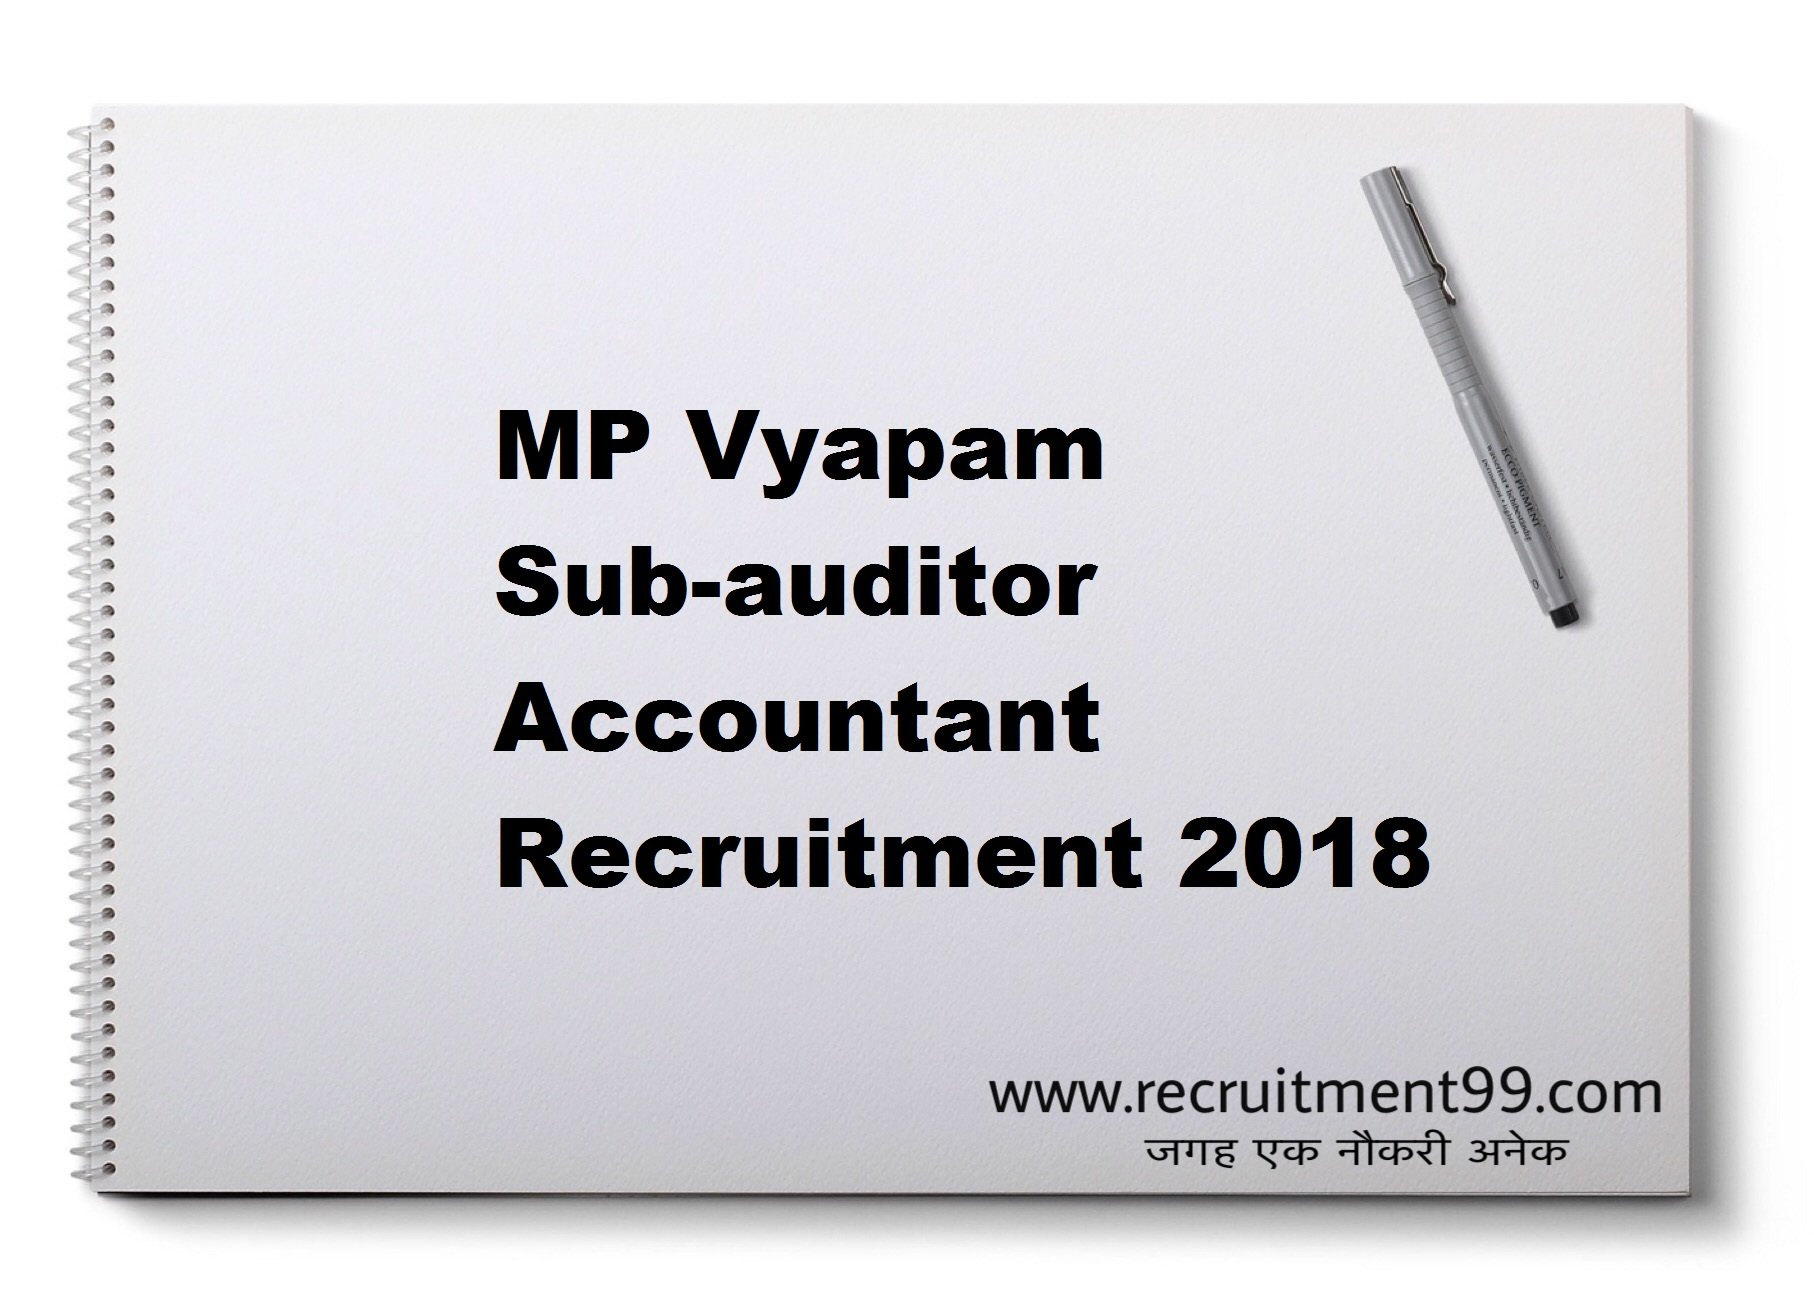 MP Vyapam Sub-auditor Accountant Recruitment Admit Card Result 2018